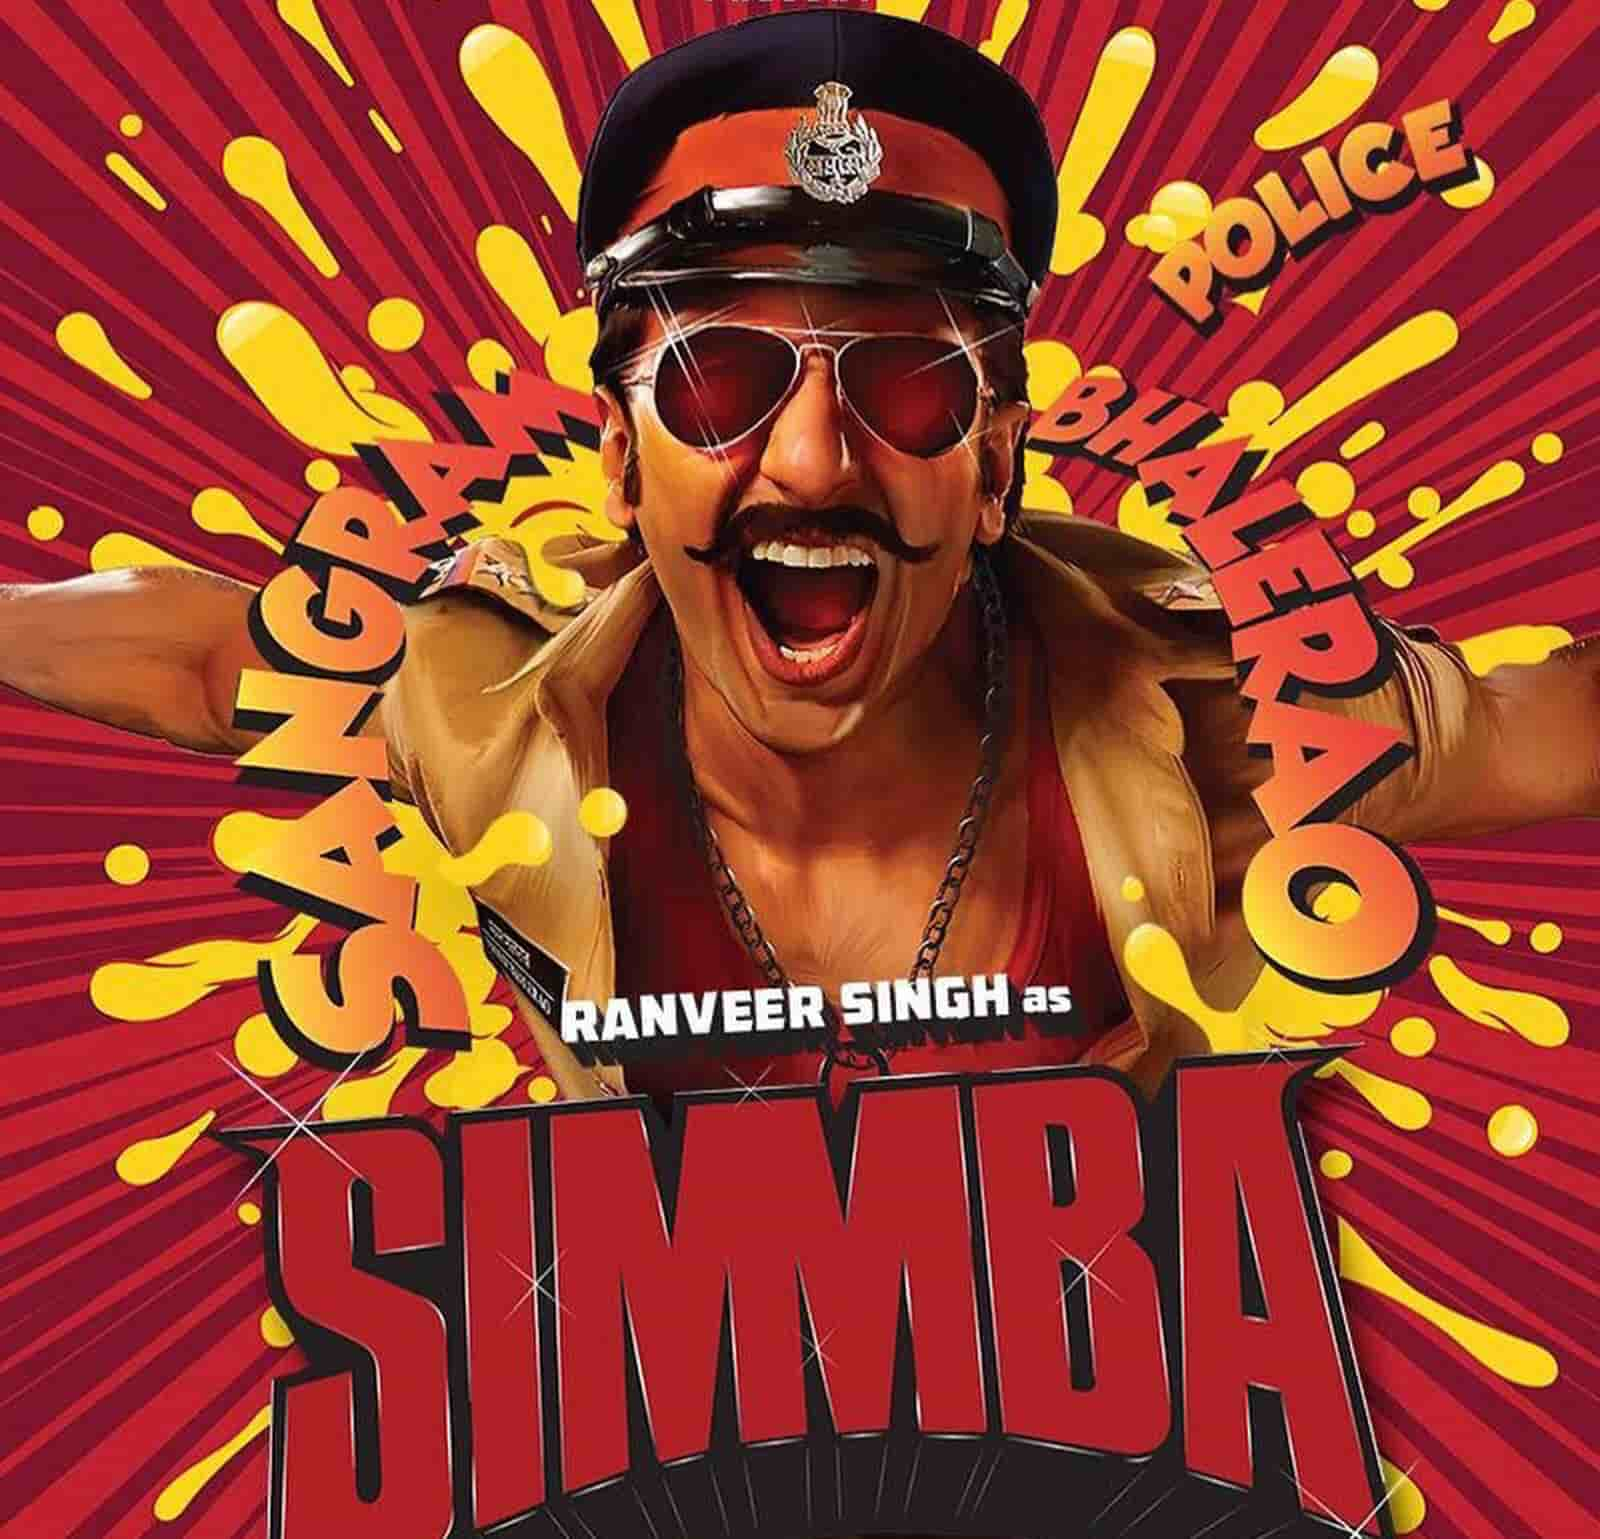 Energetic Ranveer Singh Upcoming Film 'Simmba' Trailer Out NOw